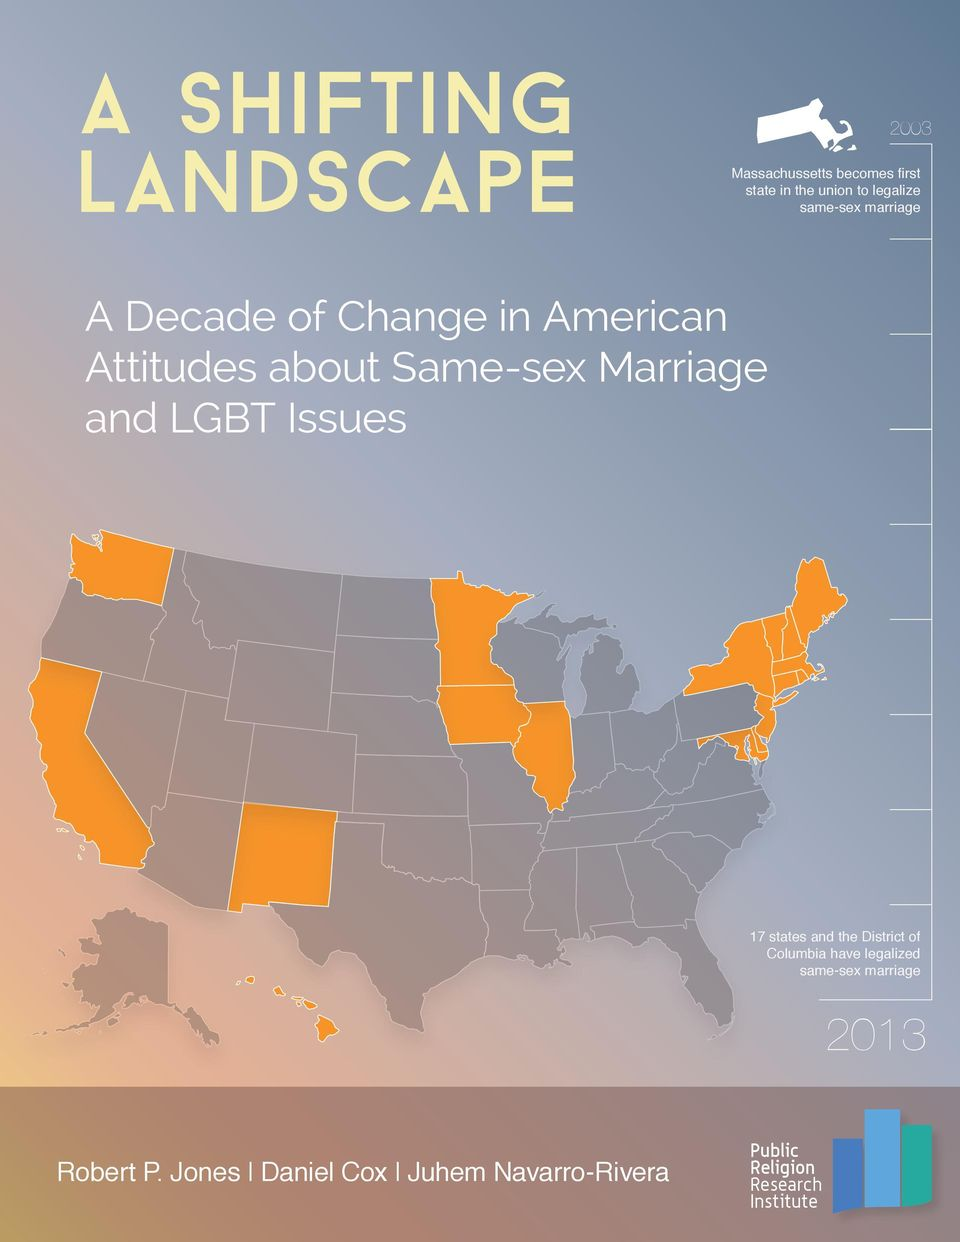 states and the District of Columbia have legalized same-sex marriage 2013 Public Religion